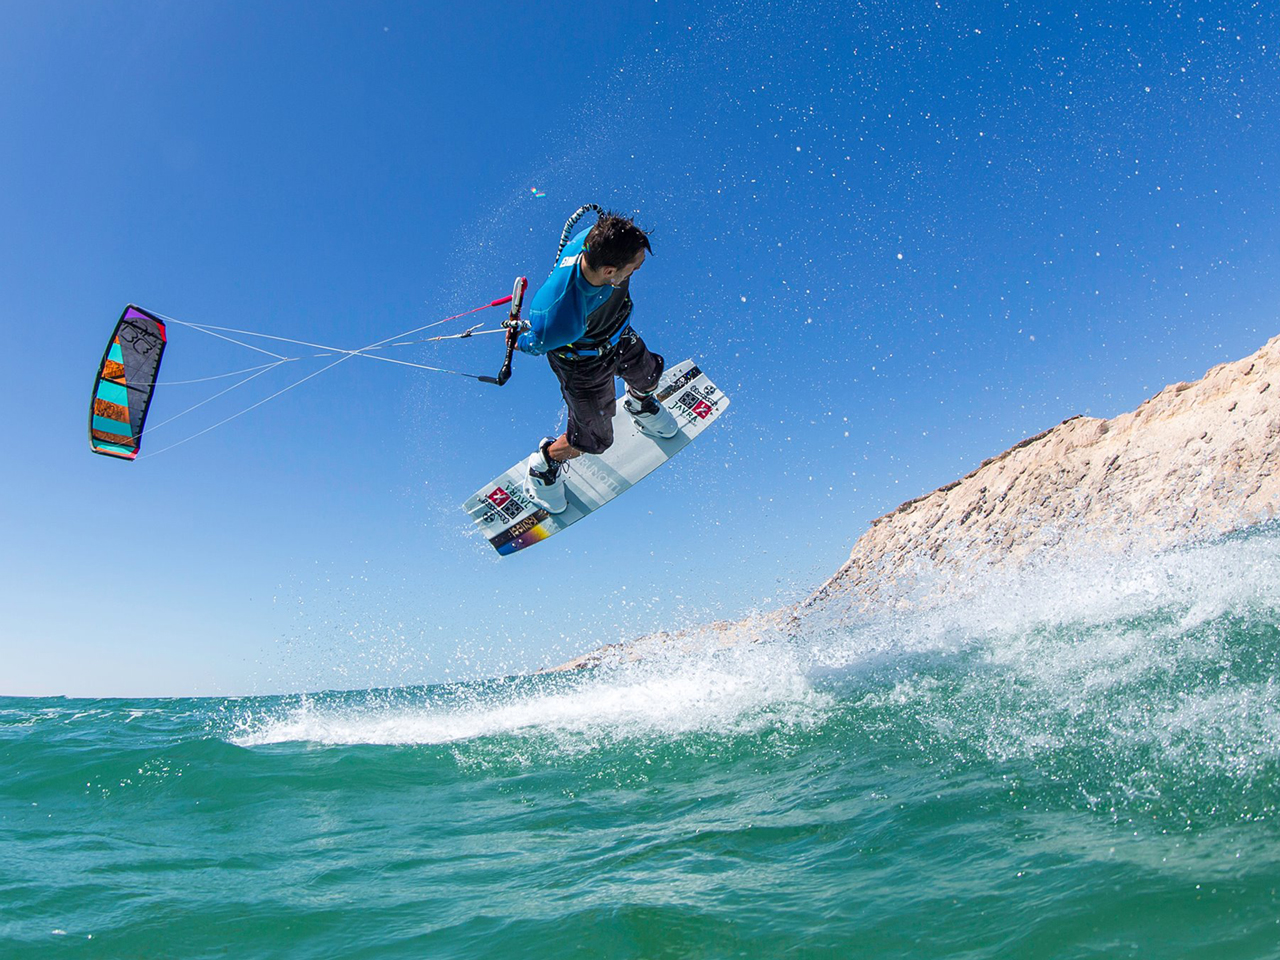 kitesurf wallpaper image - Youri Zoon with a very low handlepass - in resolution: Standard 4:3 1280 X 960